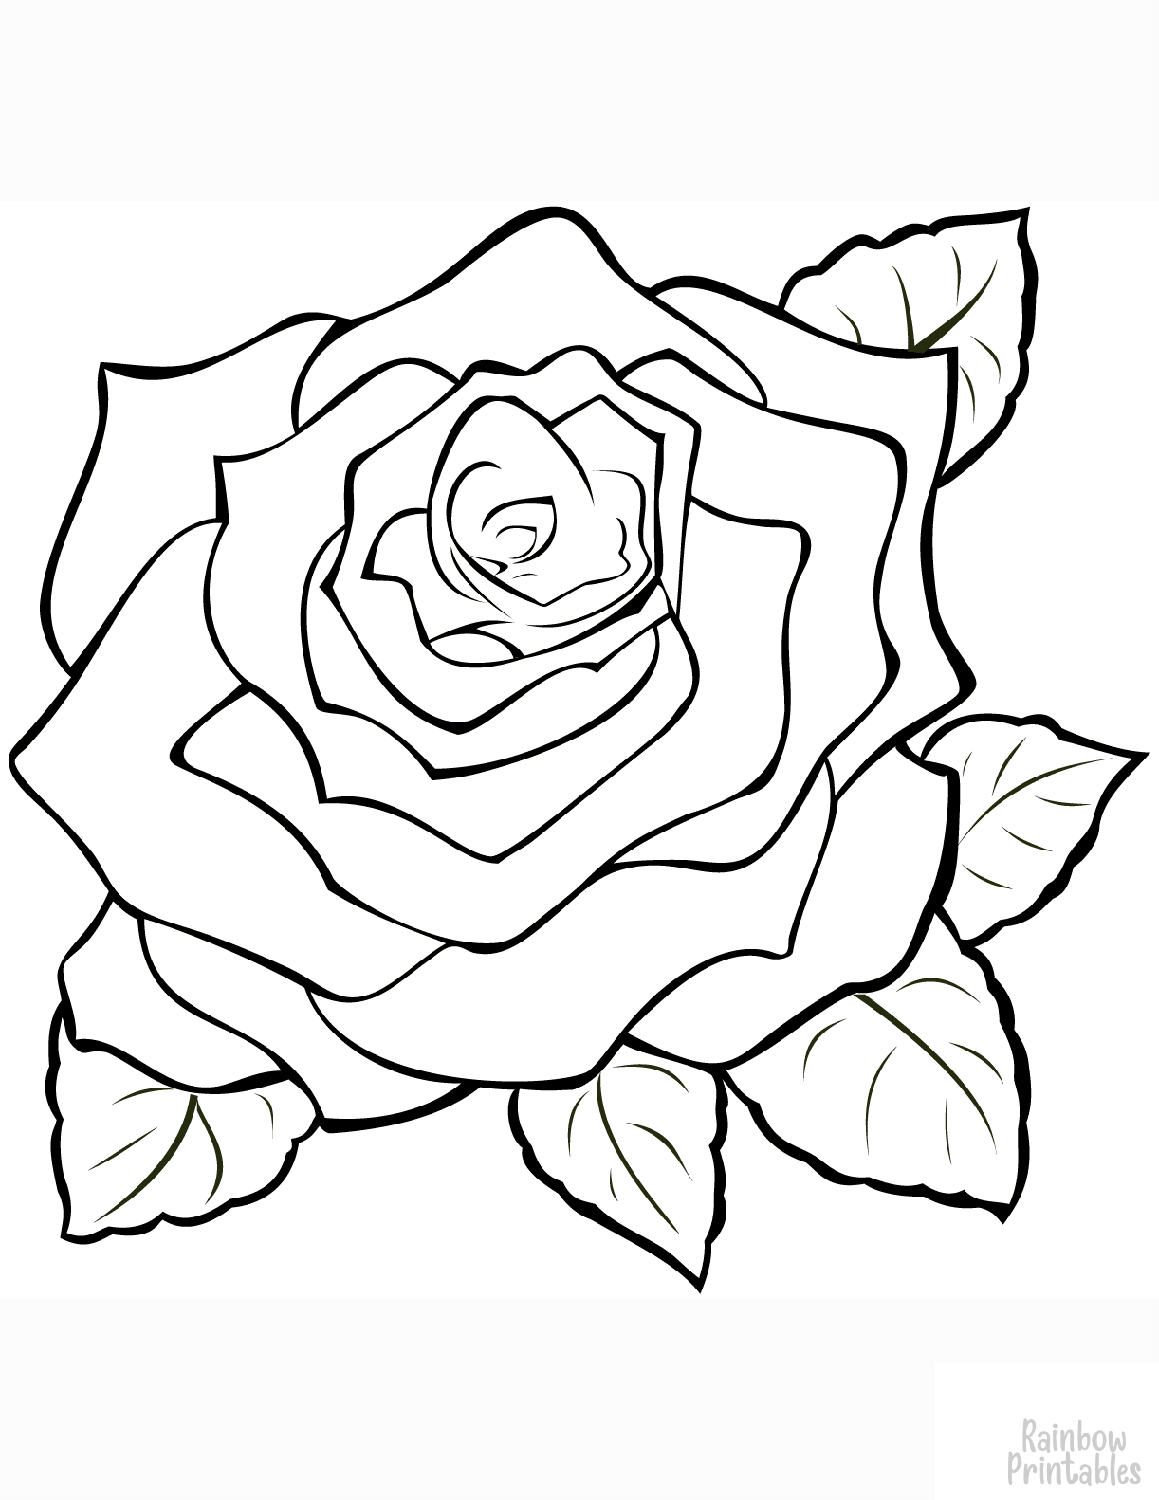 100+ Free Nature Themed Coloring Pages